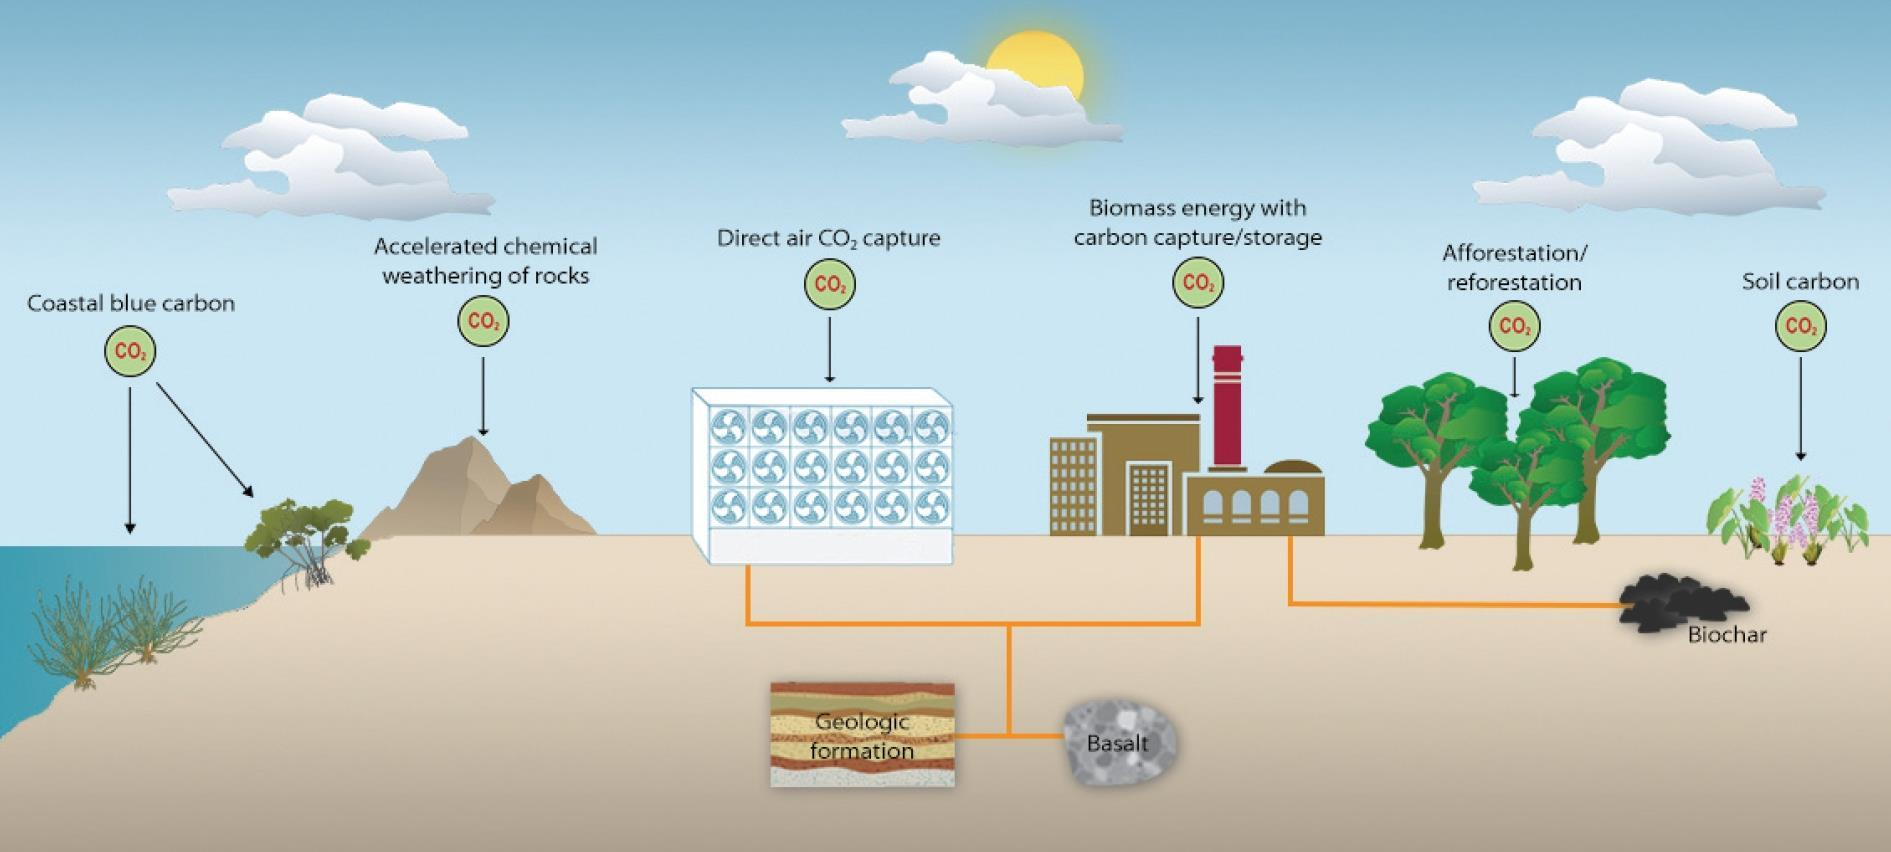 a diagram showing types of CO2 removal